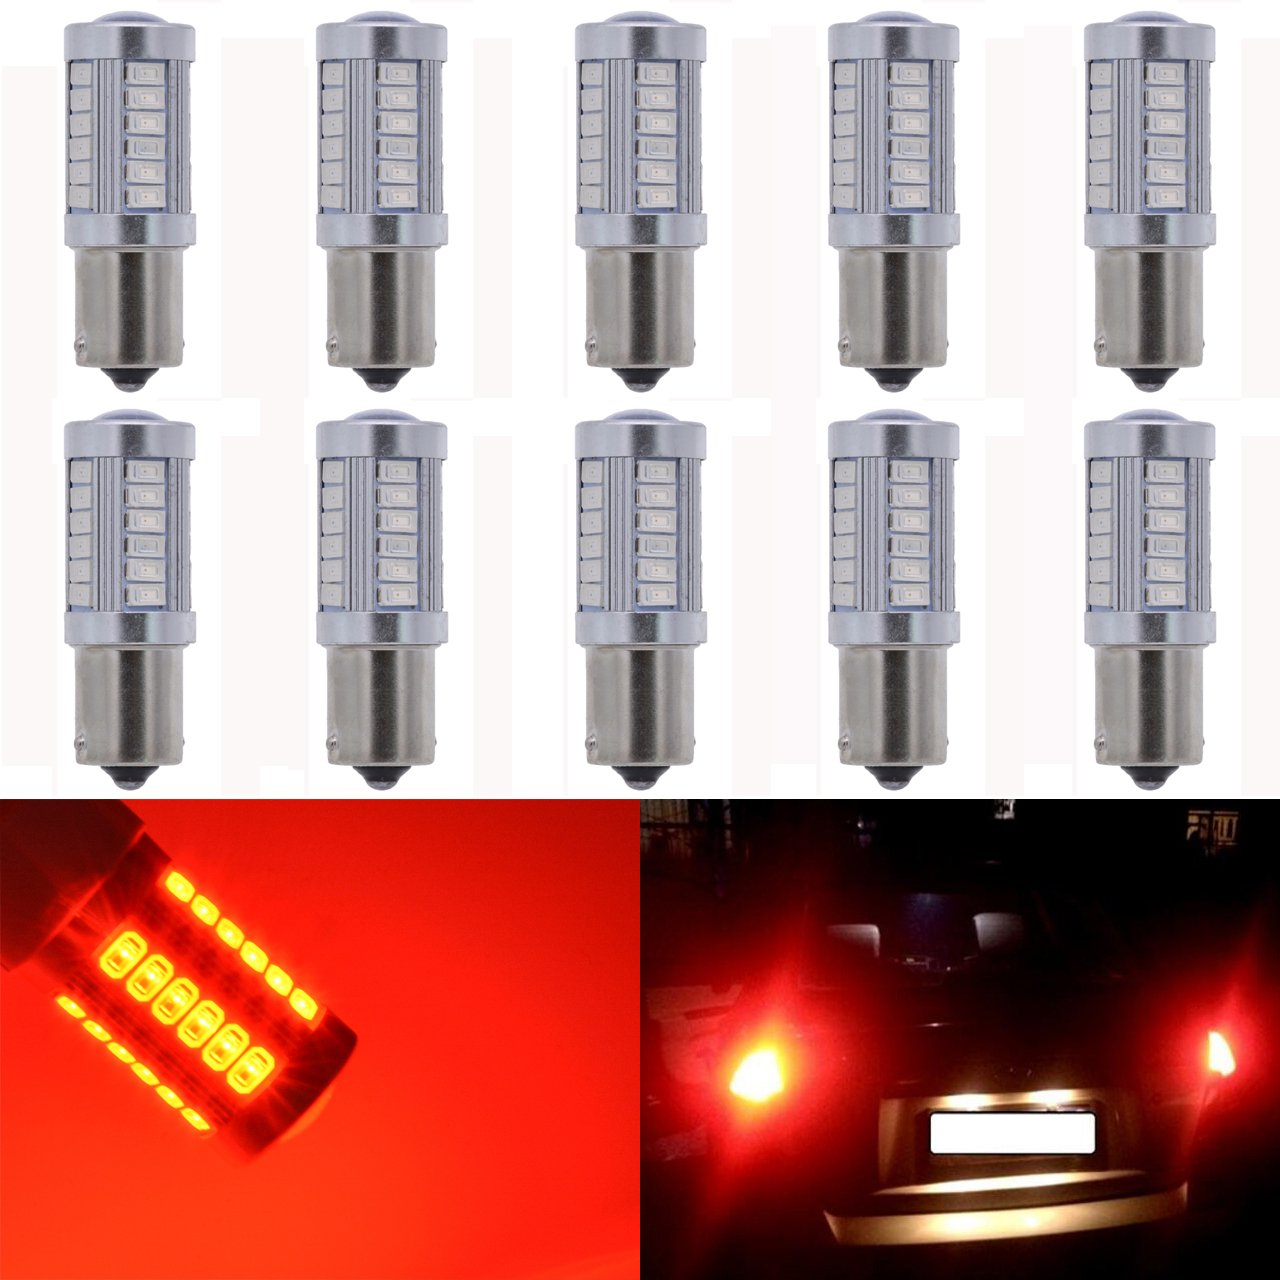 KaTur 10-Pack á mbar Super Brillante 750lums 1157  BAY15D 1016  1034  1196  2057  2357  Base 27  SMD 5050  LED de Repuesto para Coche incandescencia Bombilla RV Camper Freno Gire Lá mpara Luces DC 12&nb